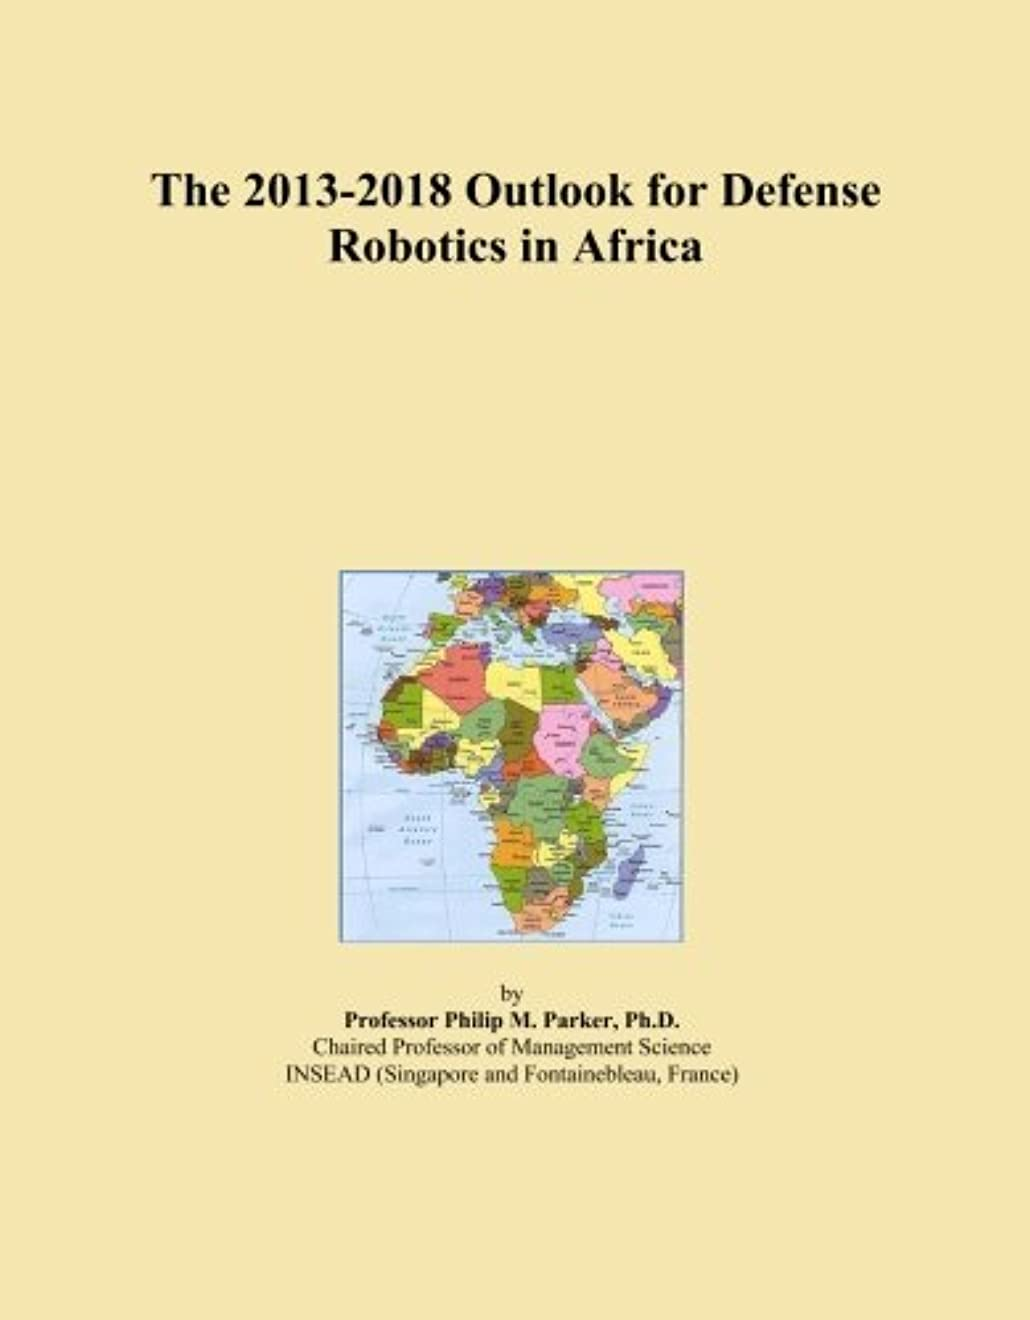 キュービック留まる噴火The 2013-2018 Outlook for Defense Robotics in Africa